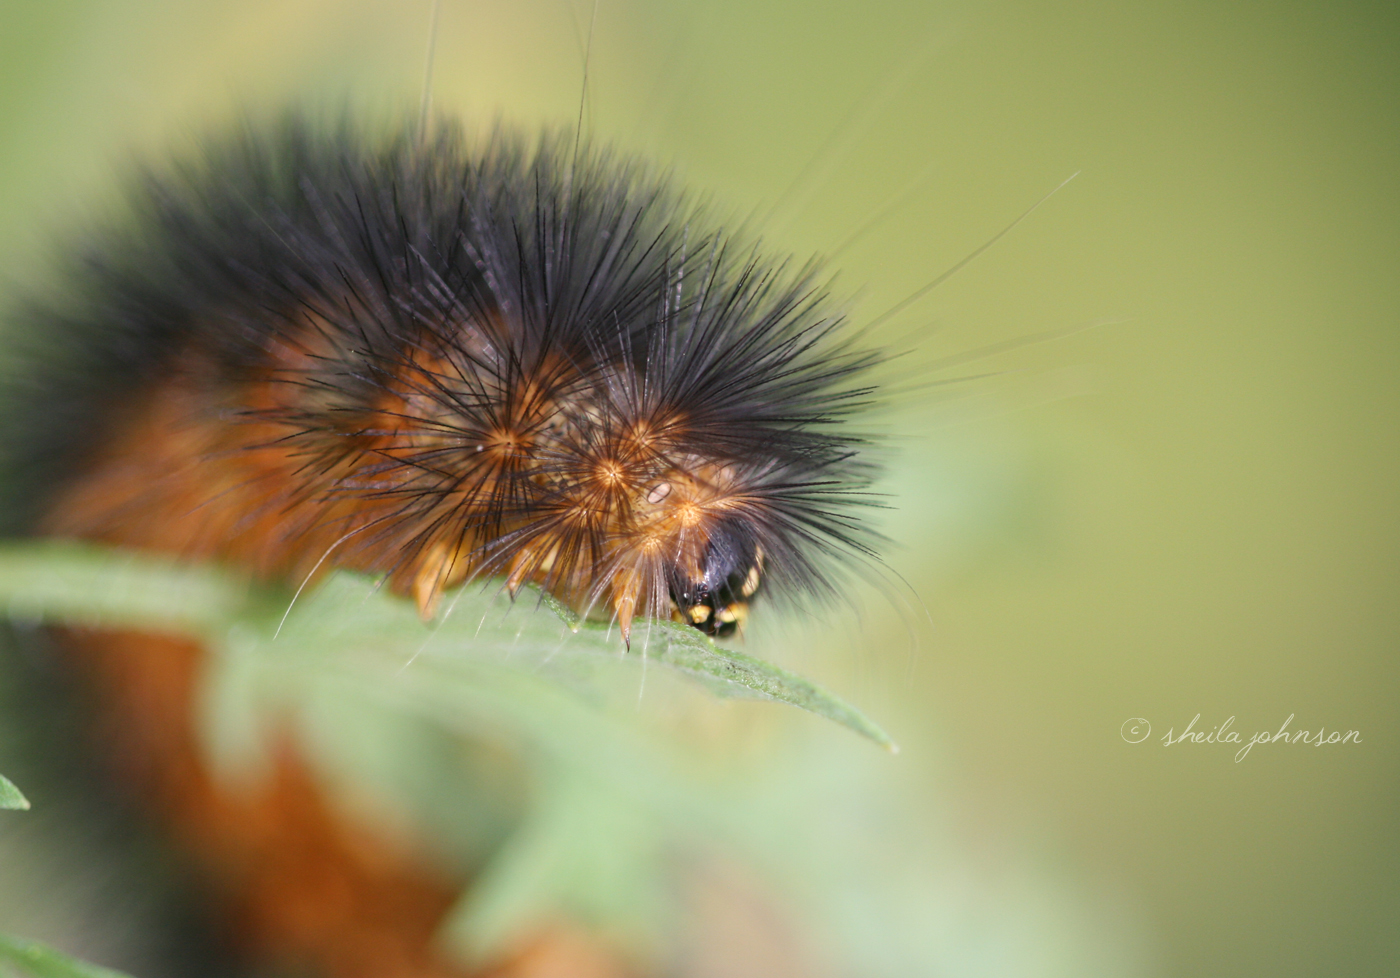 The Banded Woolly Bear Caterpillar Isn't Always Banded, But (Presuming It Gets To Adulthood) It Always Turns Into An Isabella Tiger Moth.